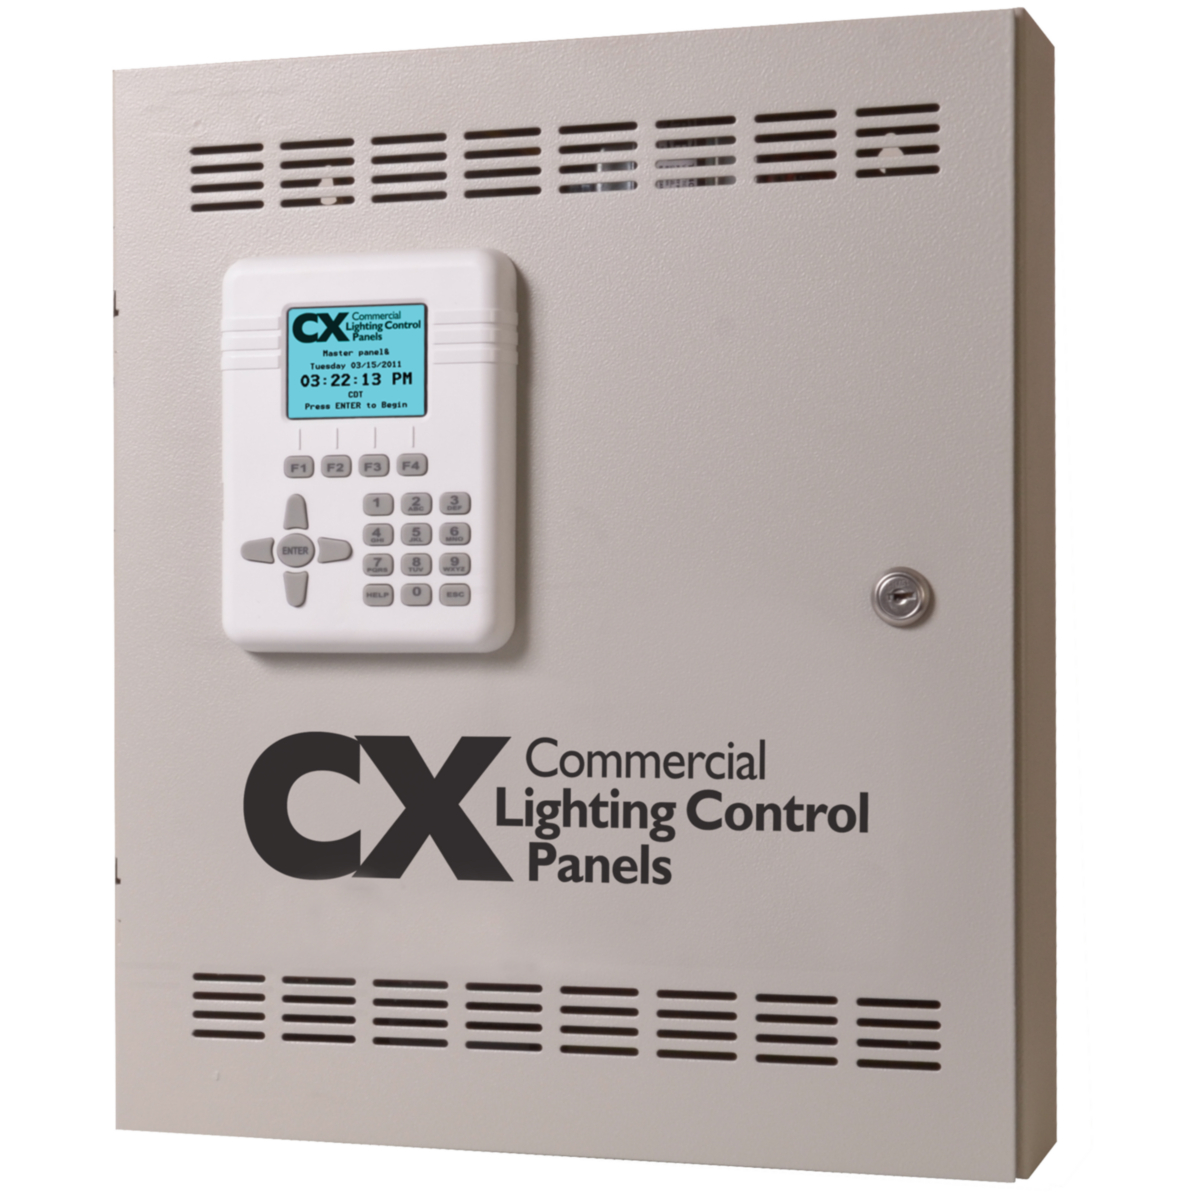 Cx Lighting Control Panels 16 And 24 Relays Brand Hubbell Typical Security Wiring Diagrams Hcs Cx04 Panel Jmk1192 3 Prodimage